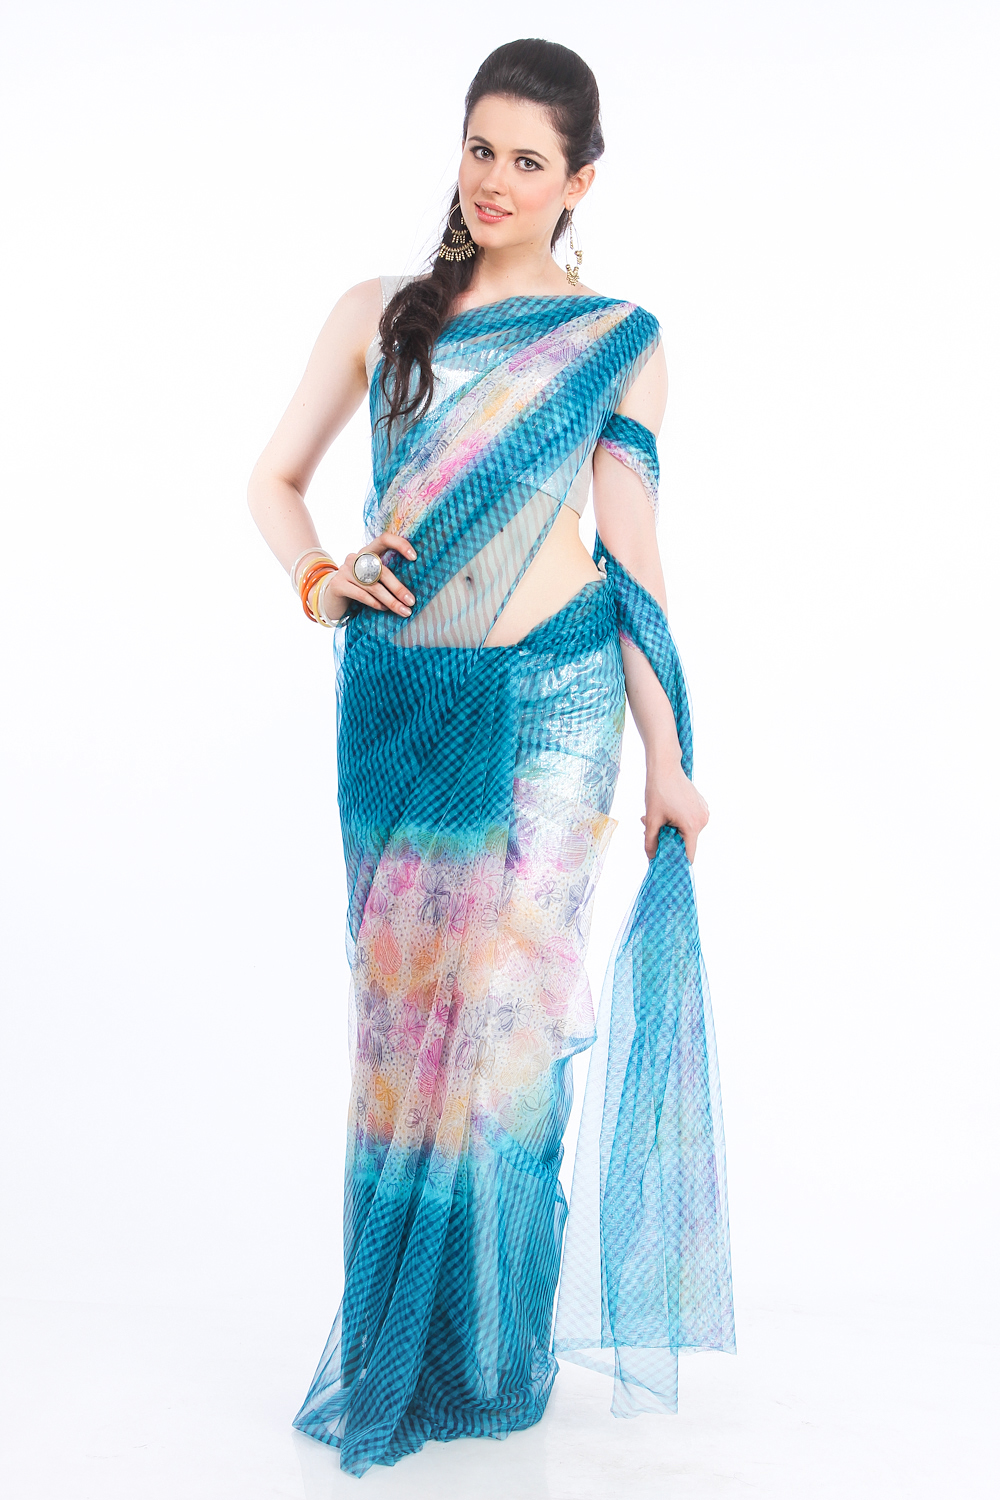 DS Turqoise Net Fabric Floral Print Fashionable Saree